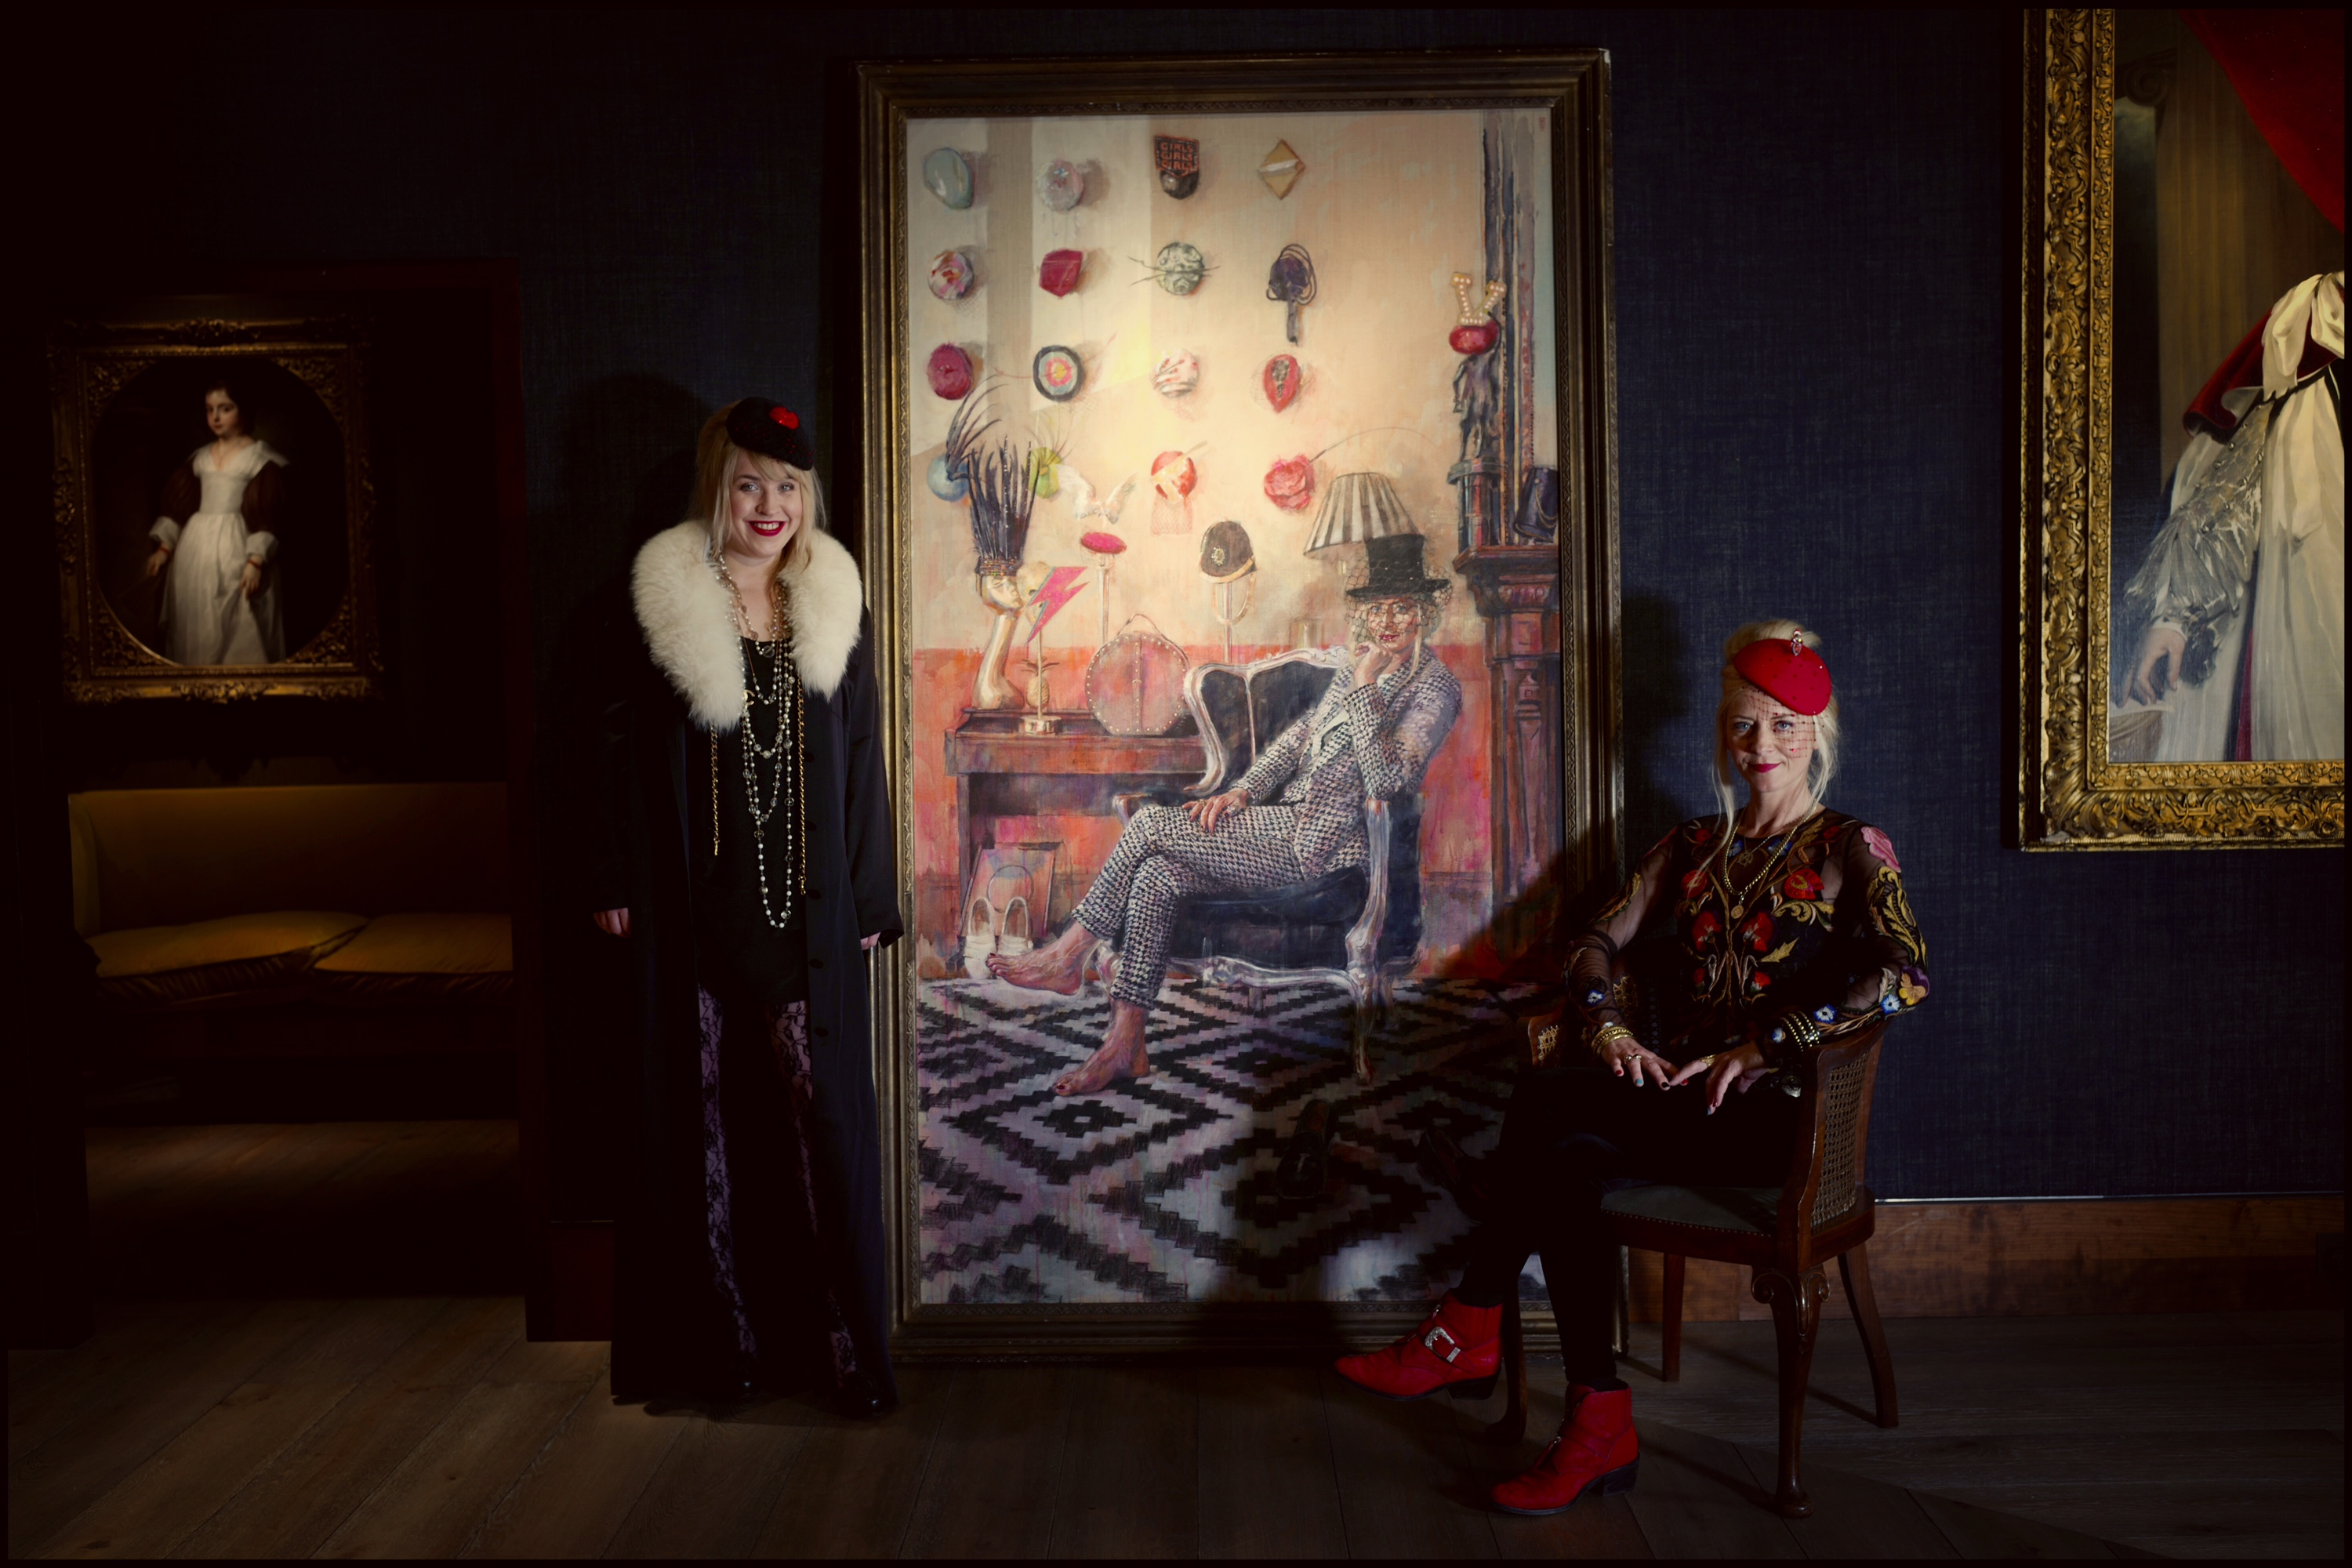 The Philip Mould gallery presents a collaboration between British portrait artist Lorna May Wadsworth and prolific hat designer Victoria Grant